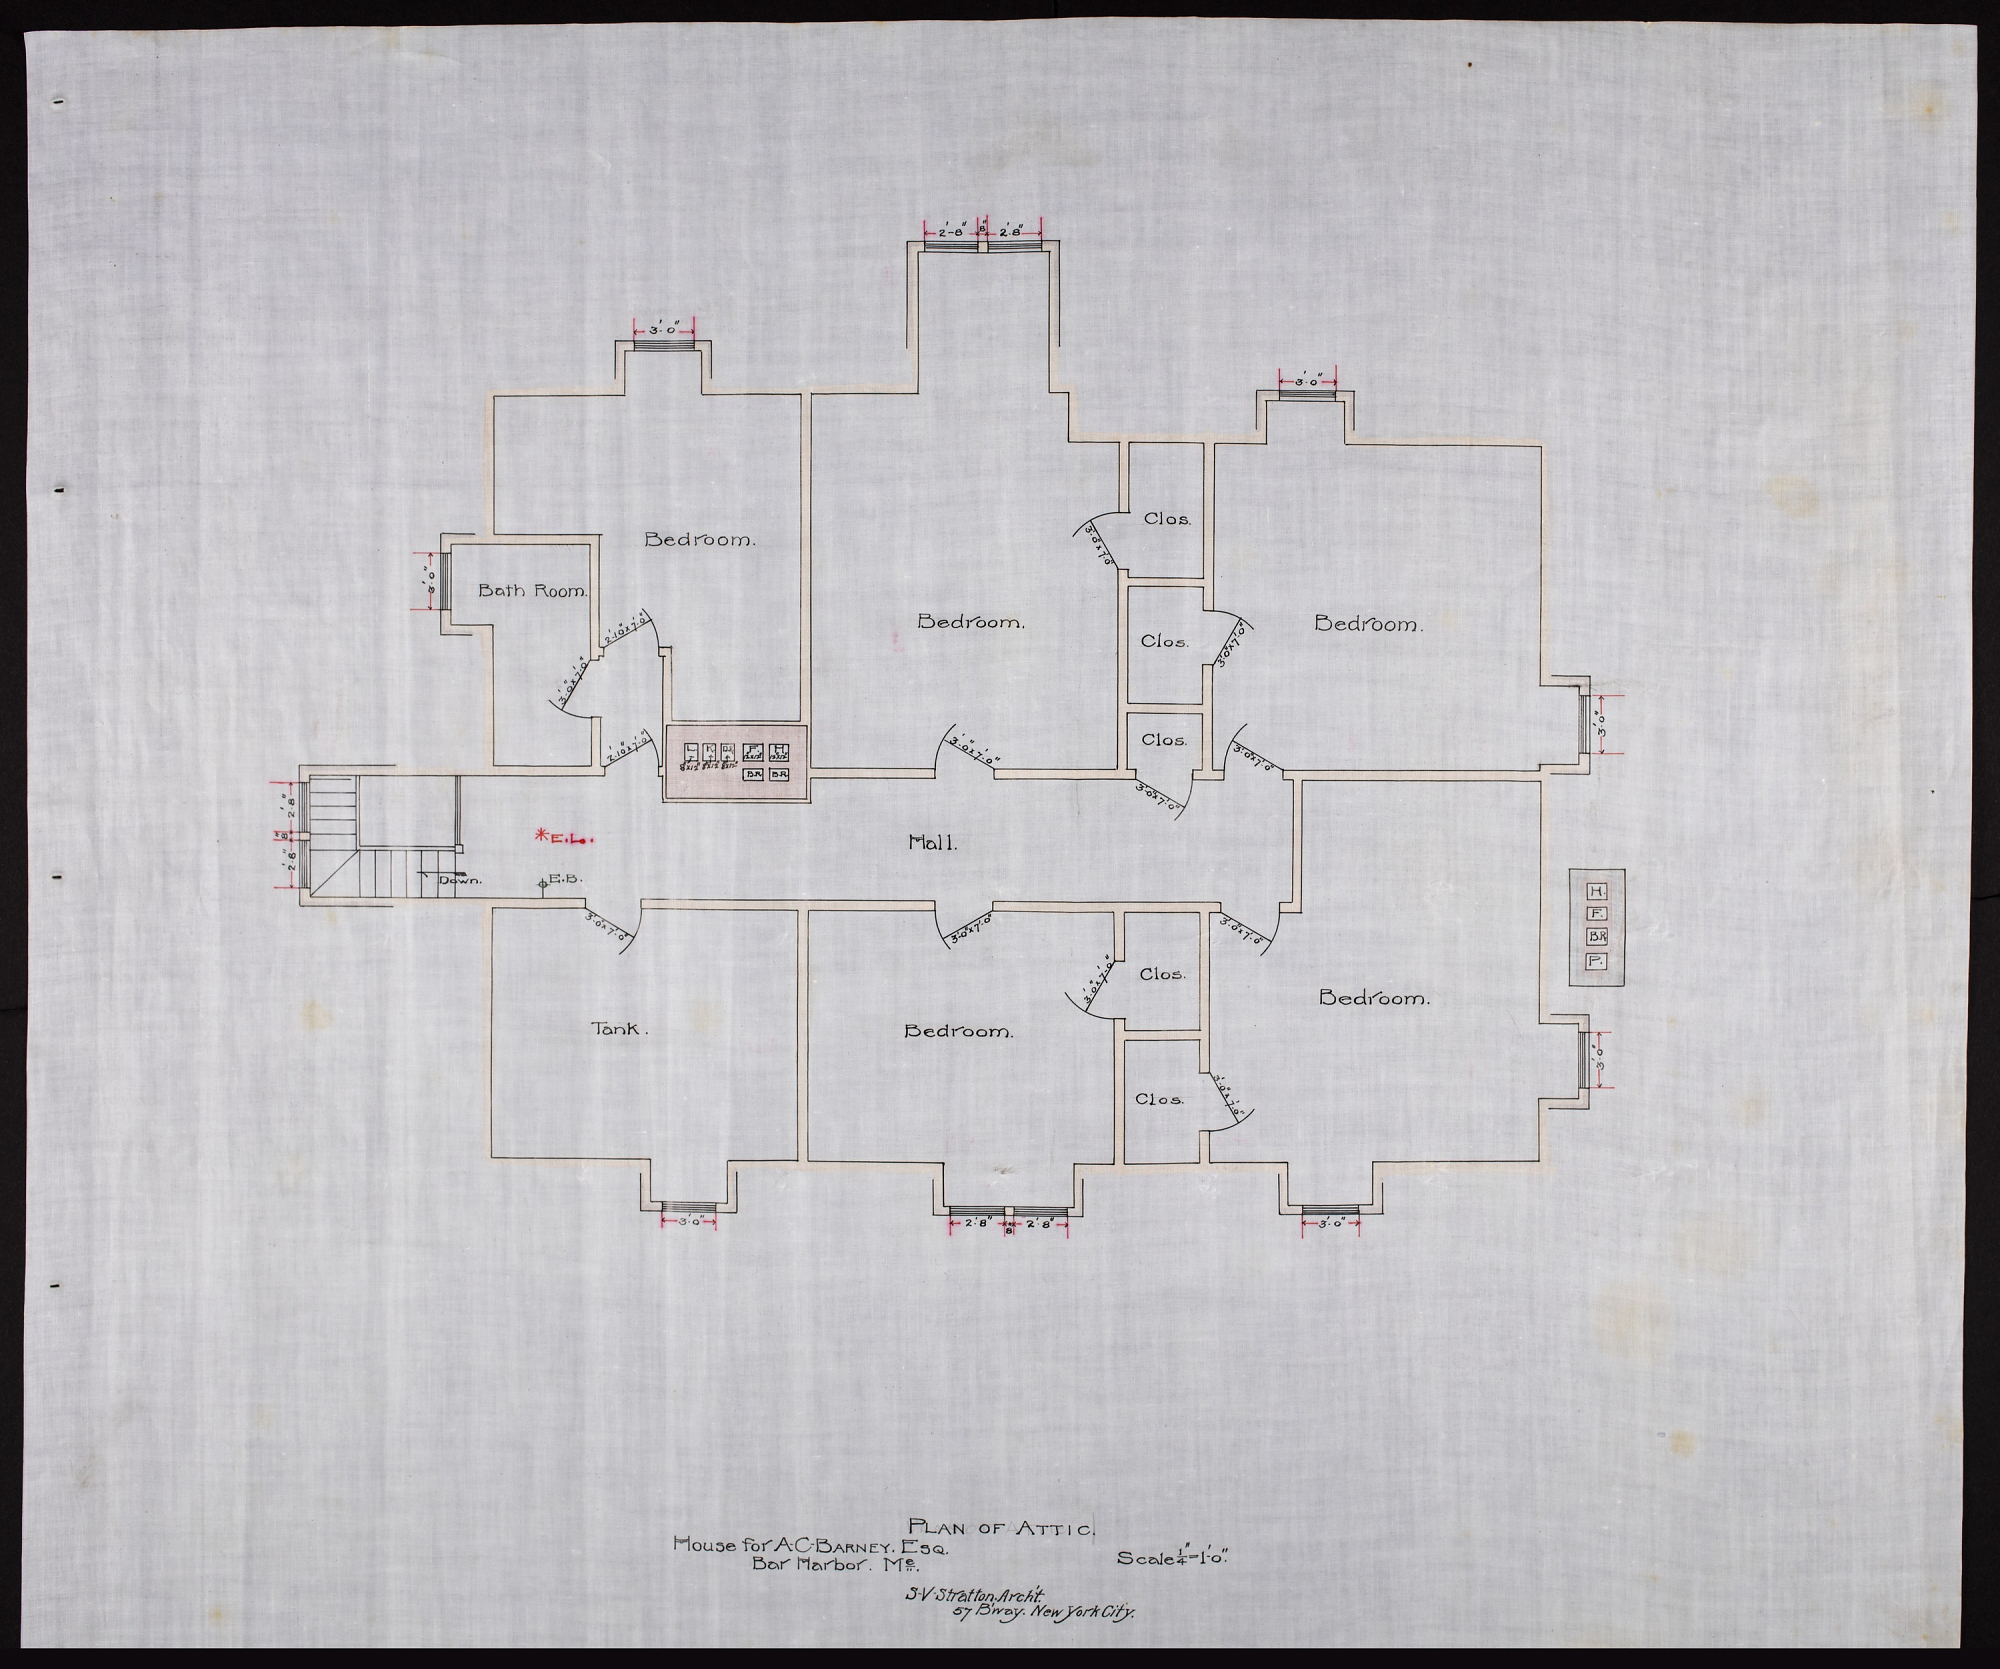 Plan showing 5 bedrooms, 1 bathroom, and tank